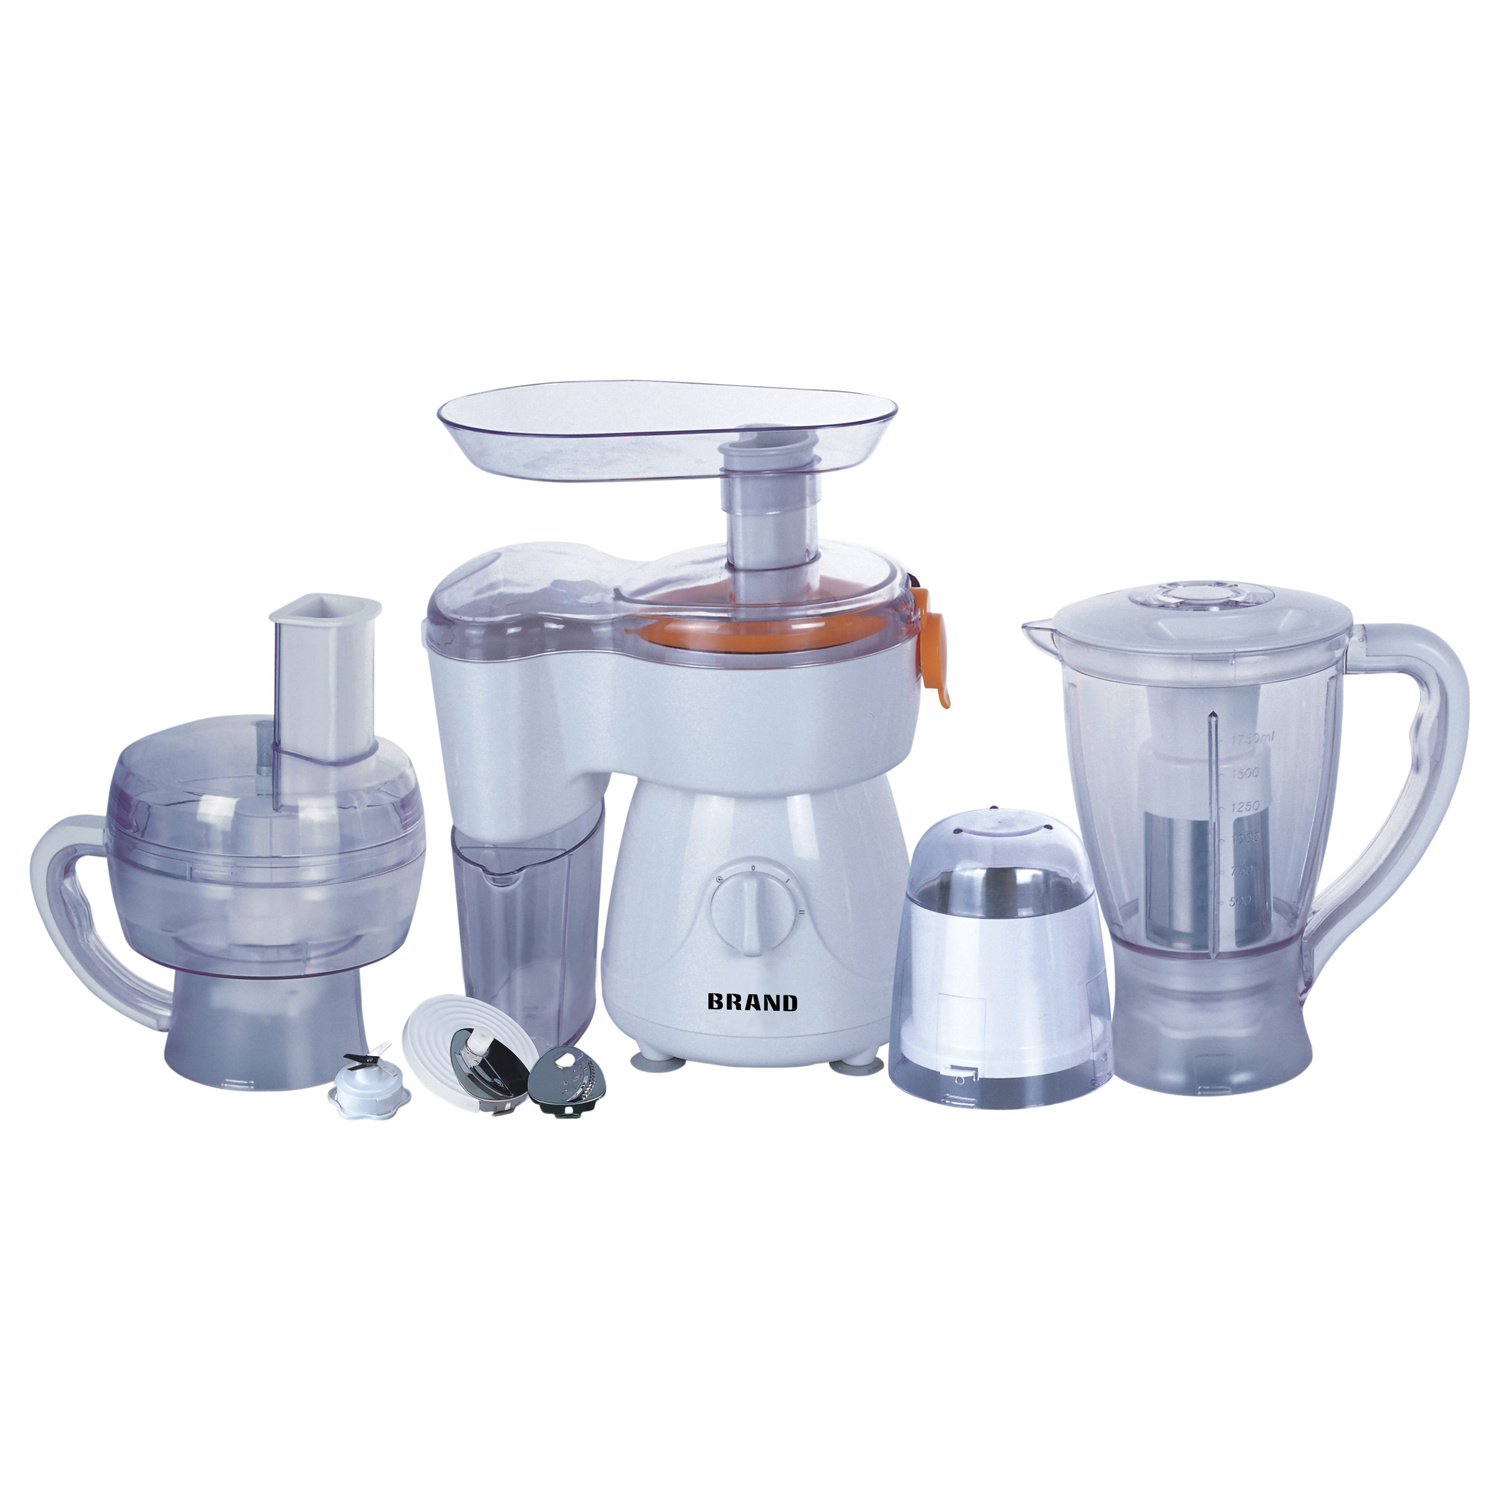 Hot Sale 300watt 7 in 1 Multi Functions Food Processor